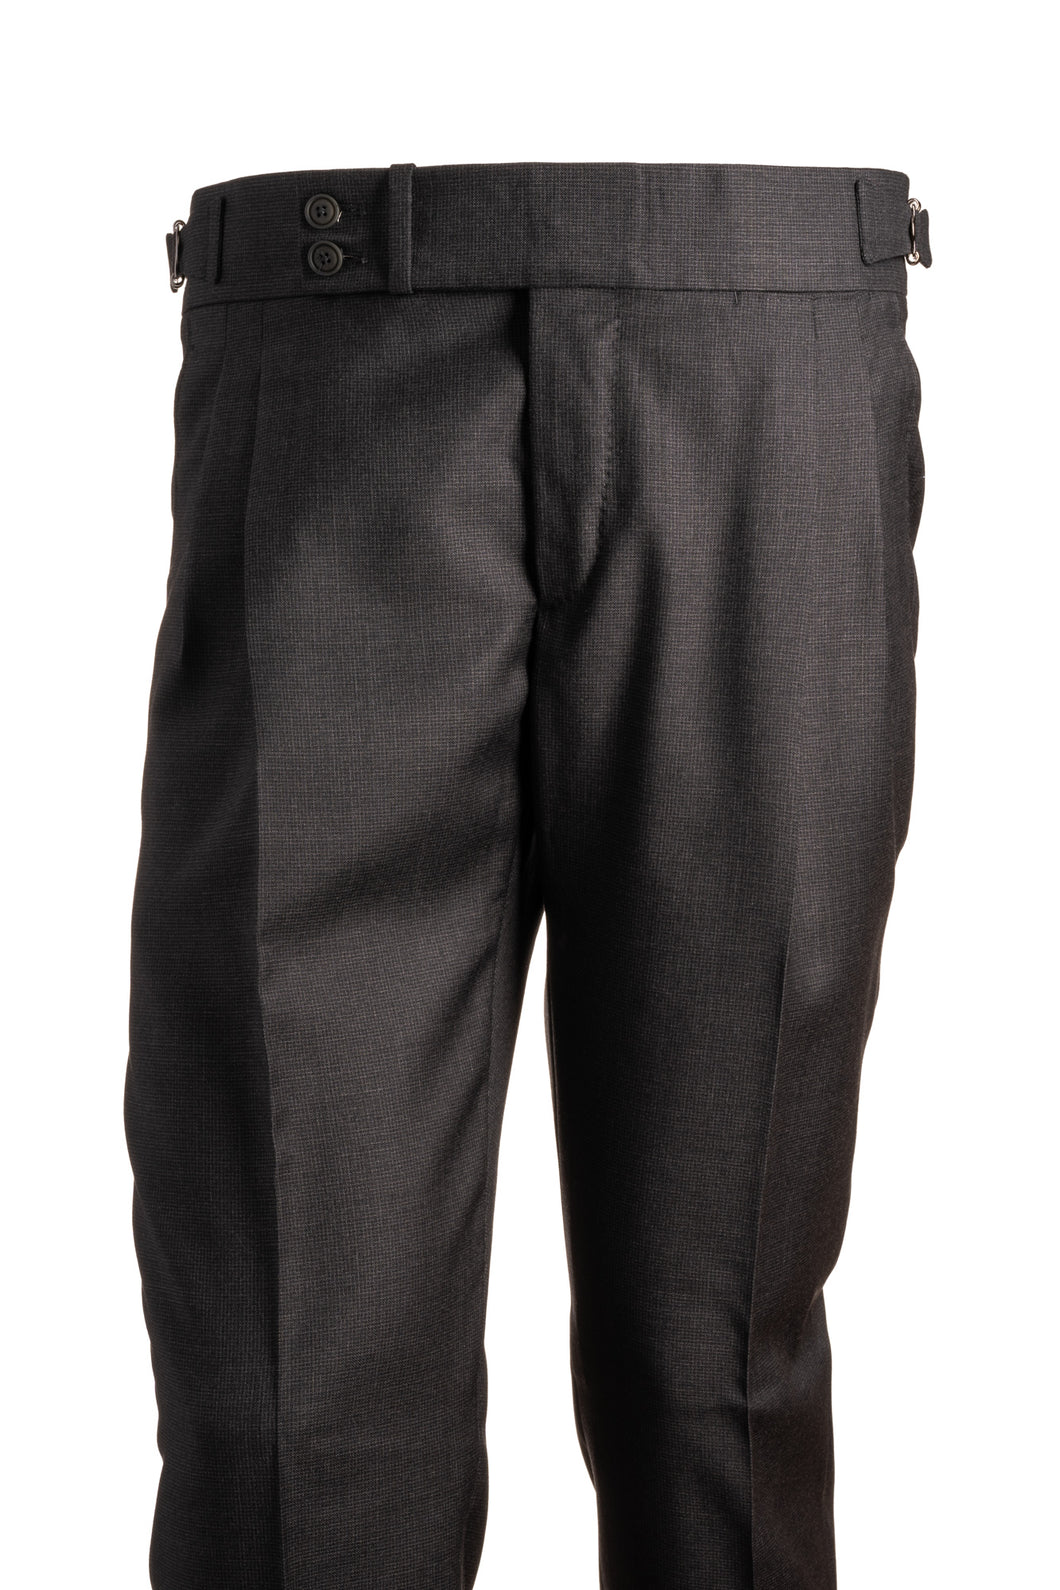 Candia Charcoal Grey Check Wool Trousers